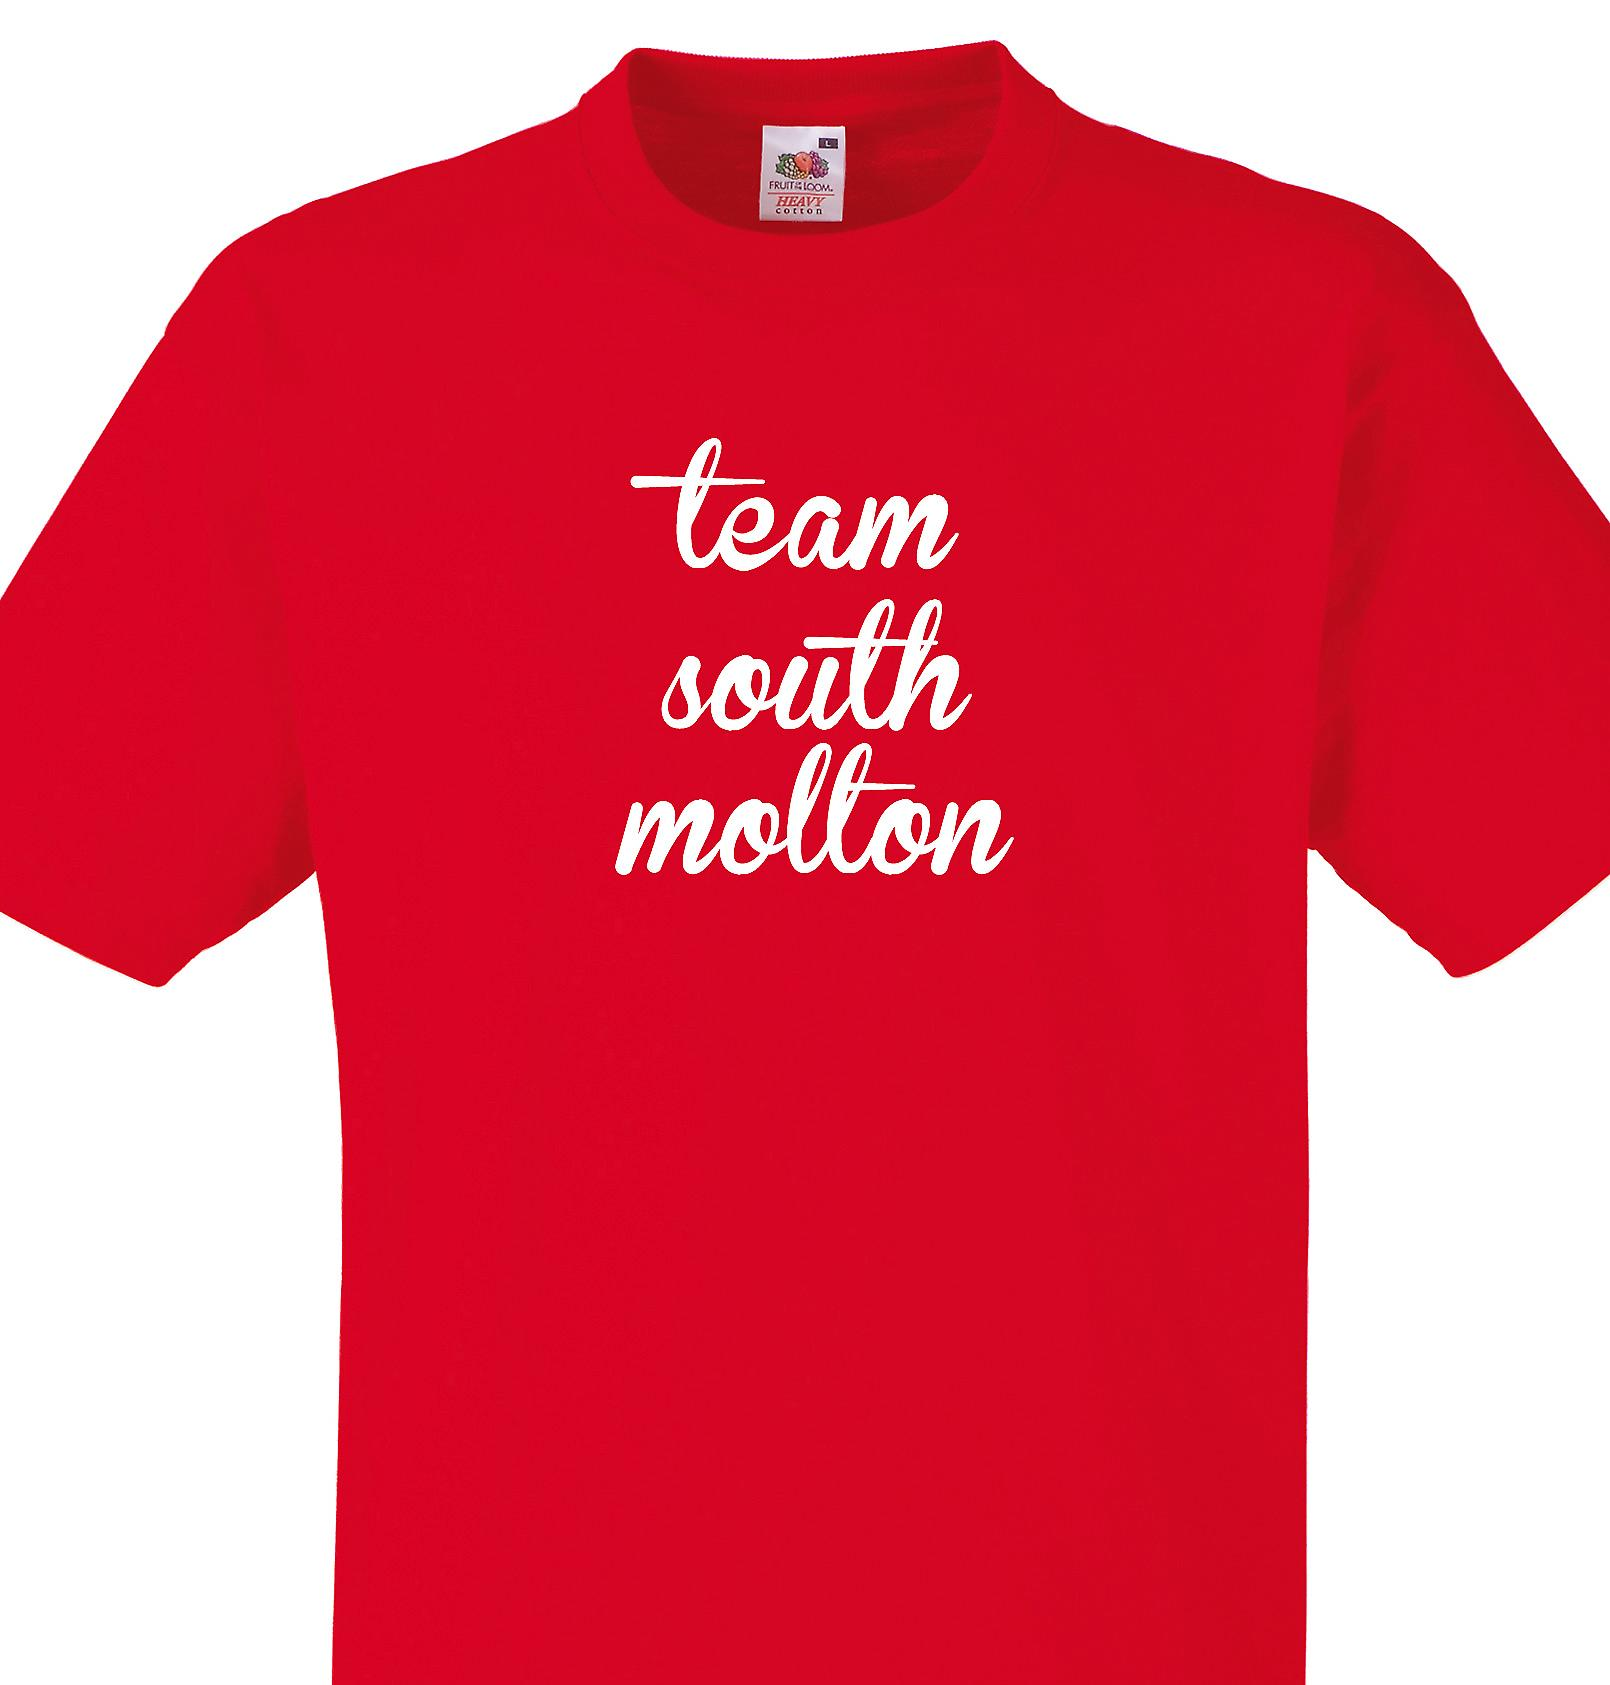 Team South molton Red T shirt